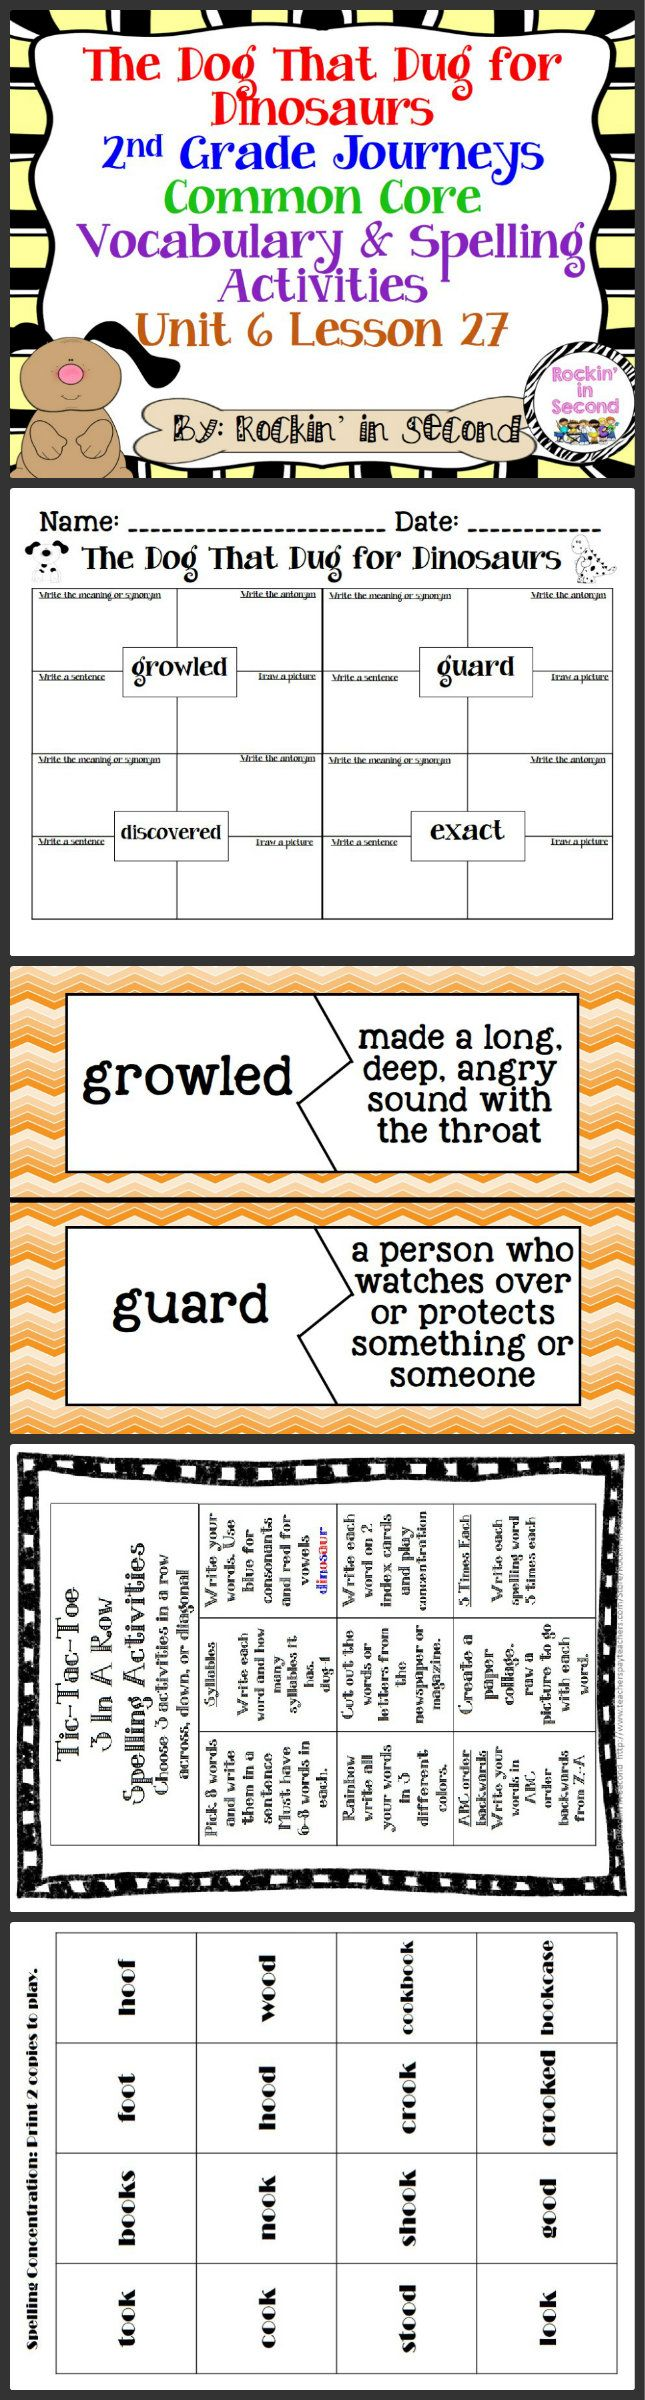 Journeys The Dog That Dug for Dinosaurs Lesson 27 Spelling & Vocab. Activities  In this bundle you will receive Vocabulary Puzzles, Vocabulary 4 square sheets, Spelling lists for student's agendas, Tic-Tac-Toe spelling activity, Spelling Concentration Game, and Rainbow Write spelling paper.  These all are aligned with Common Core and goes along with Journeys.